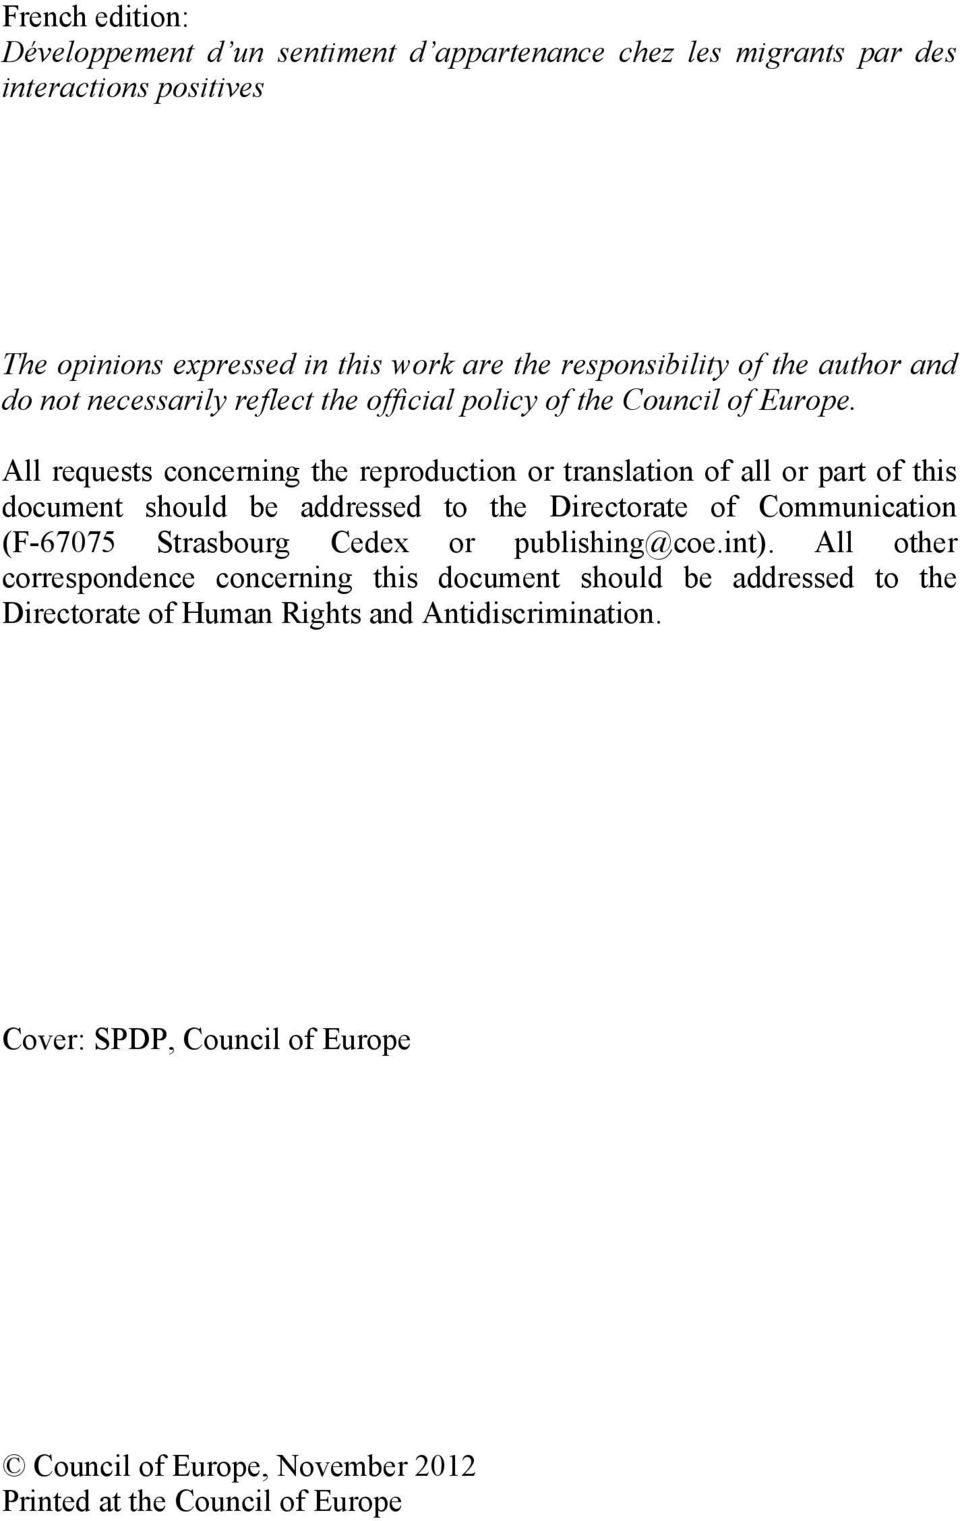 All requests concerning the reproduction or translation of all or part of this document should be addressed to the Directorate of Communication (F-67075 Strasbourg Cedex